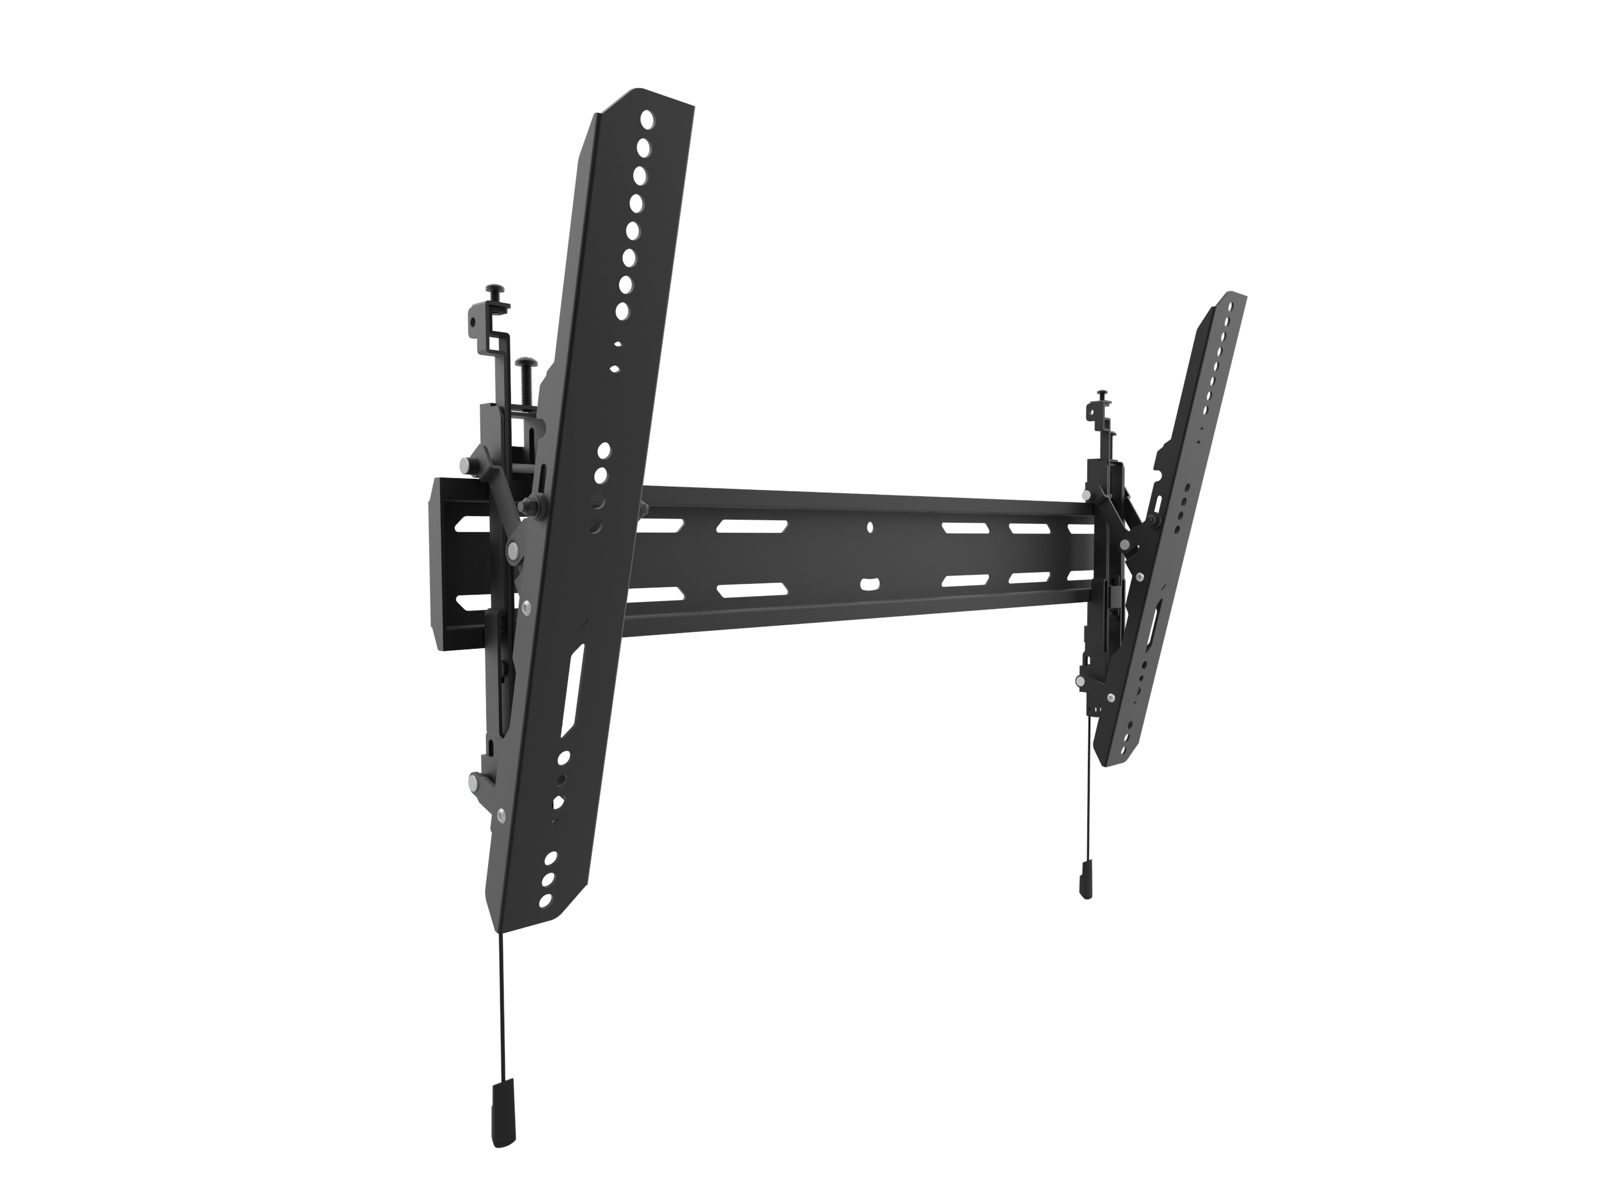 """PT300 Tilting Wall Mount for 32"""" to 90"""" TVs - VESA Compliant up to 600x400"""